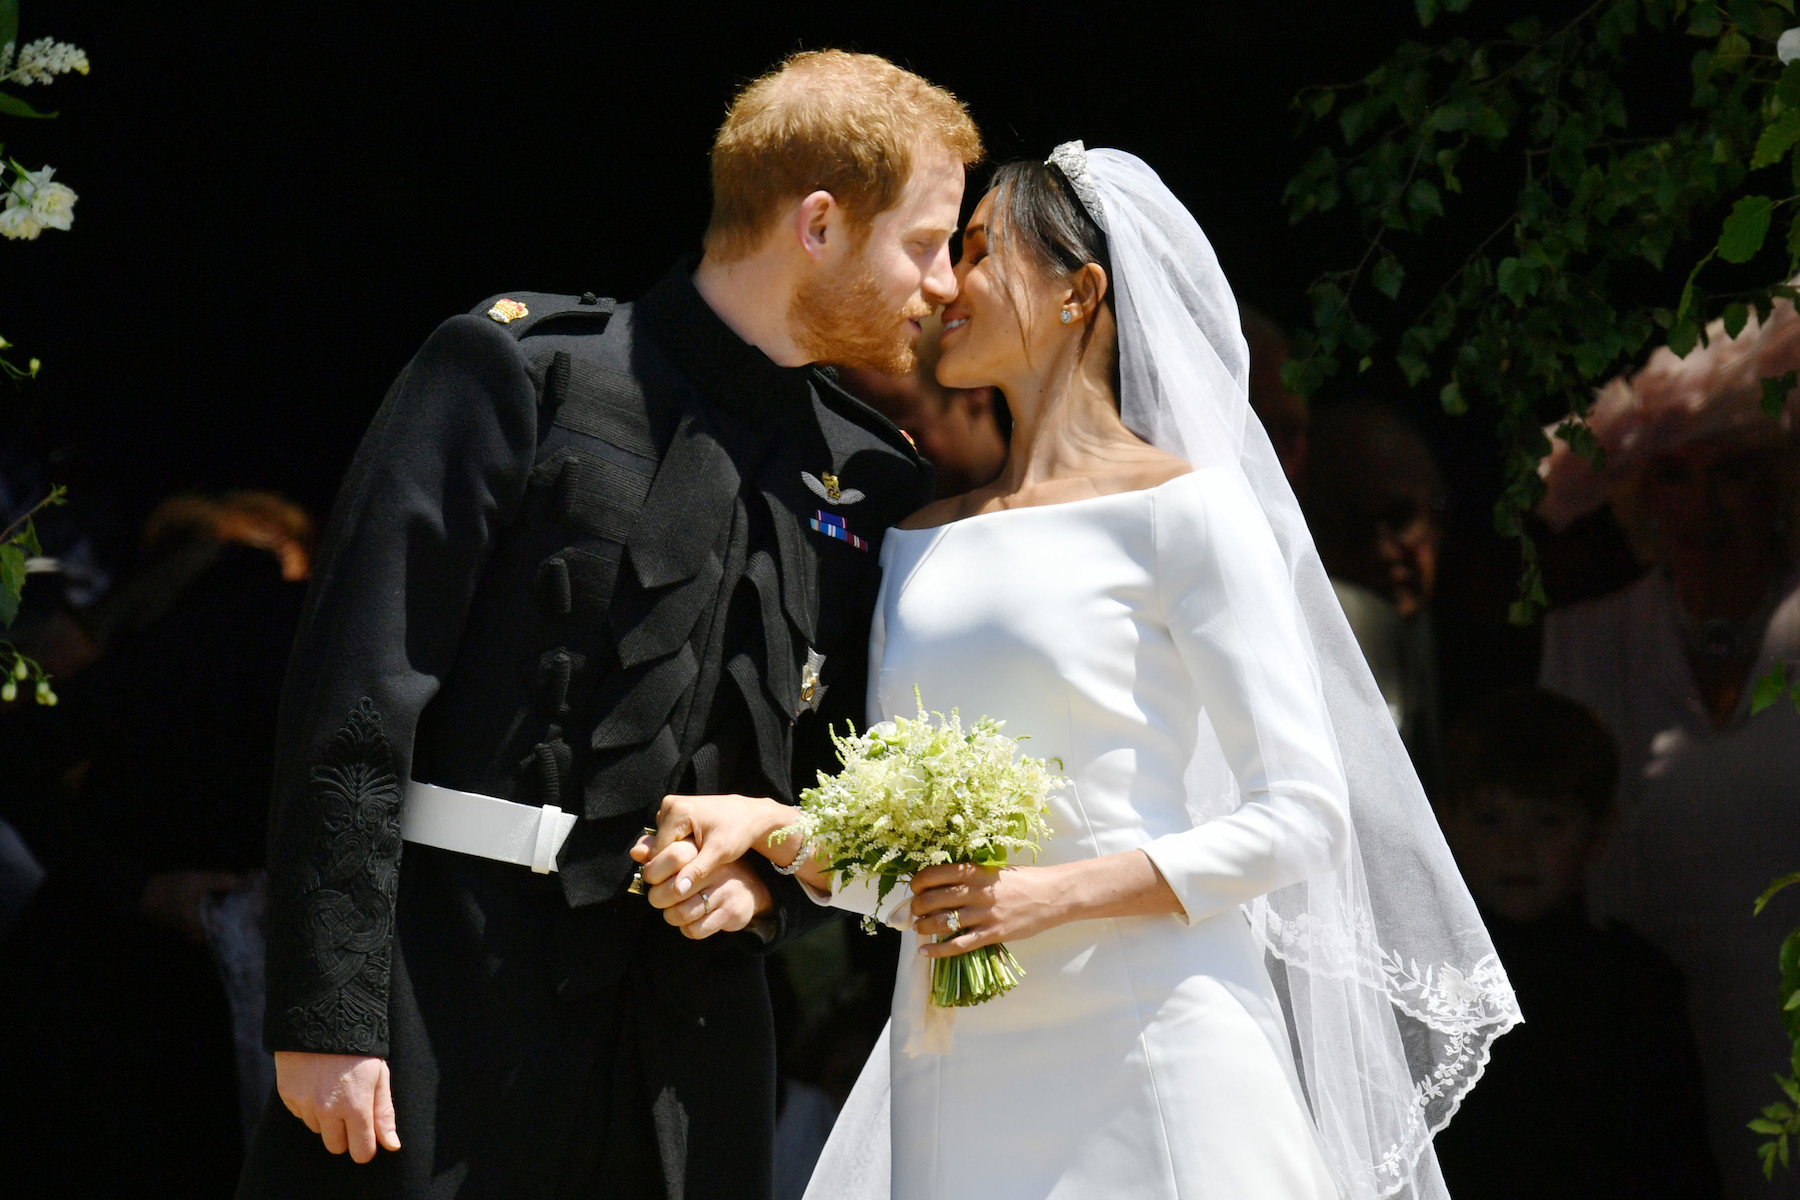 "<div class=""meta image-caption""><div class=""origin-logo origin-image wls""><span>wls</span></div><span class=""caption-text"">Britain's Prince Harry, Duke of Sussex kisses his wife Meghan, Duchess of Sussex as they leave from the West Door of St George's Chapel. (Ben Birchall/AFP/Getty Images)</span></div>"